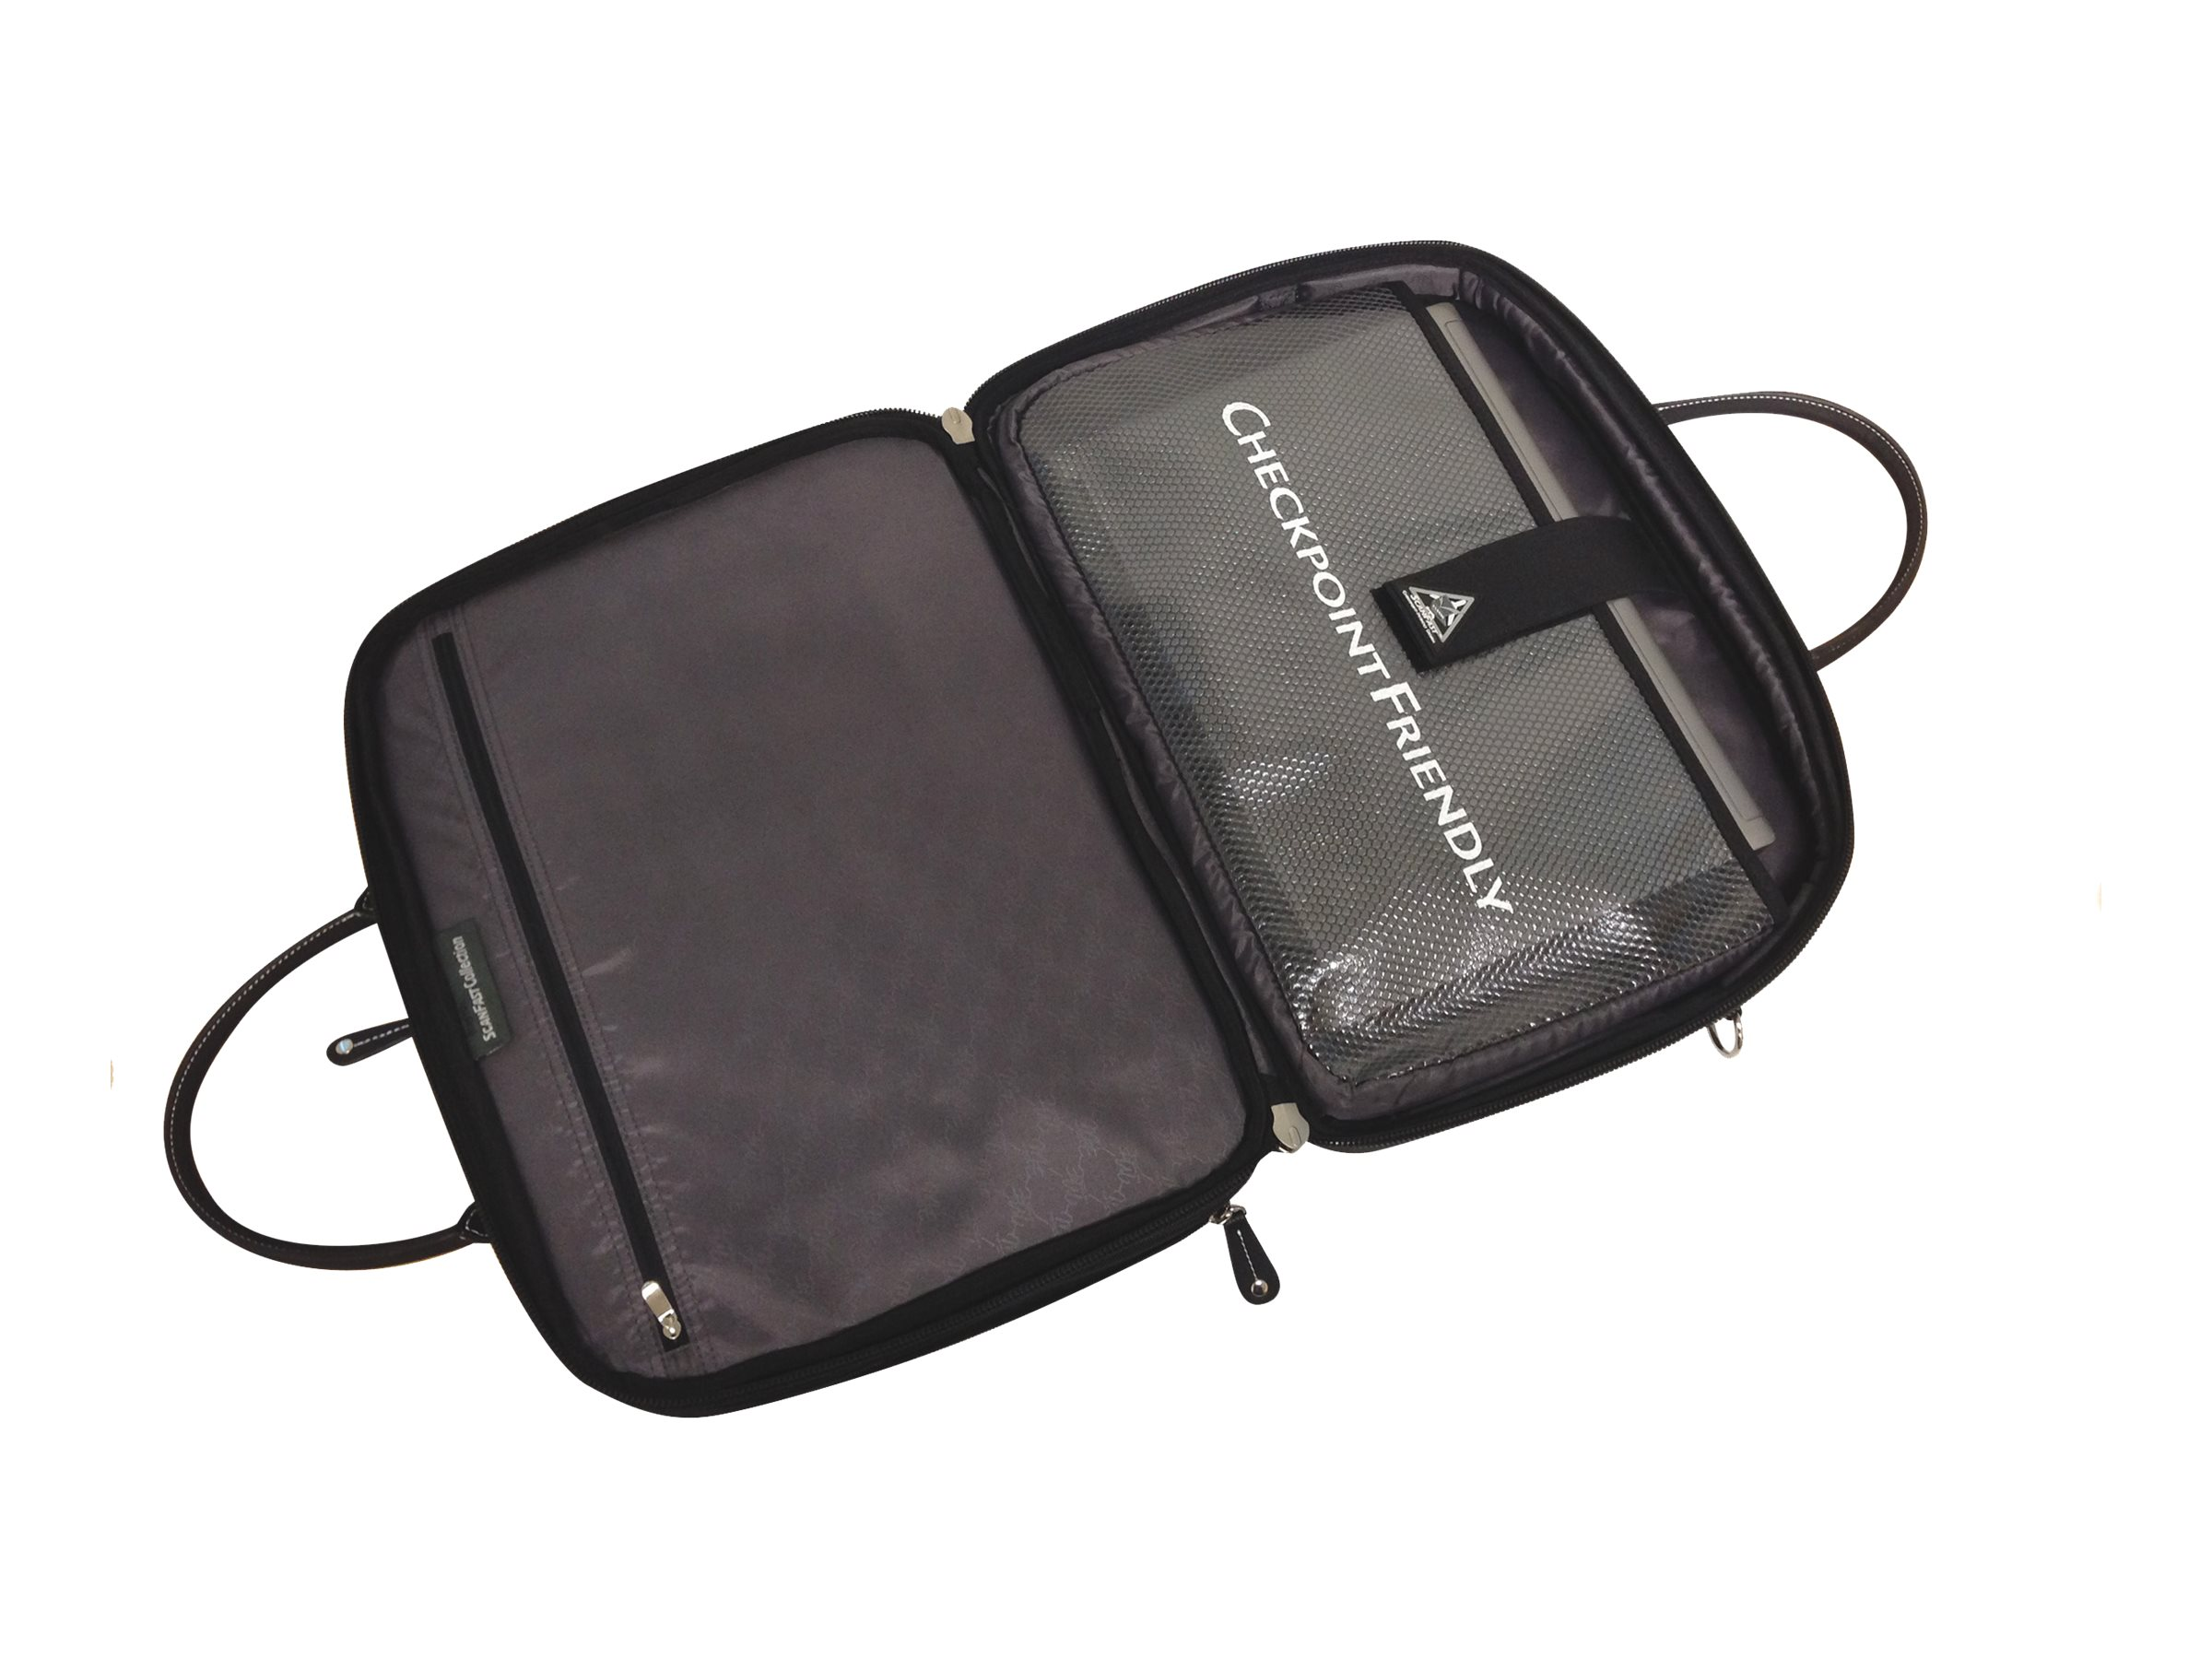 Mobile Edge Scanfast Briefcase, 14.1 15, MESFEBHS